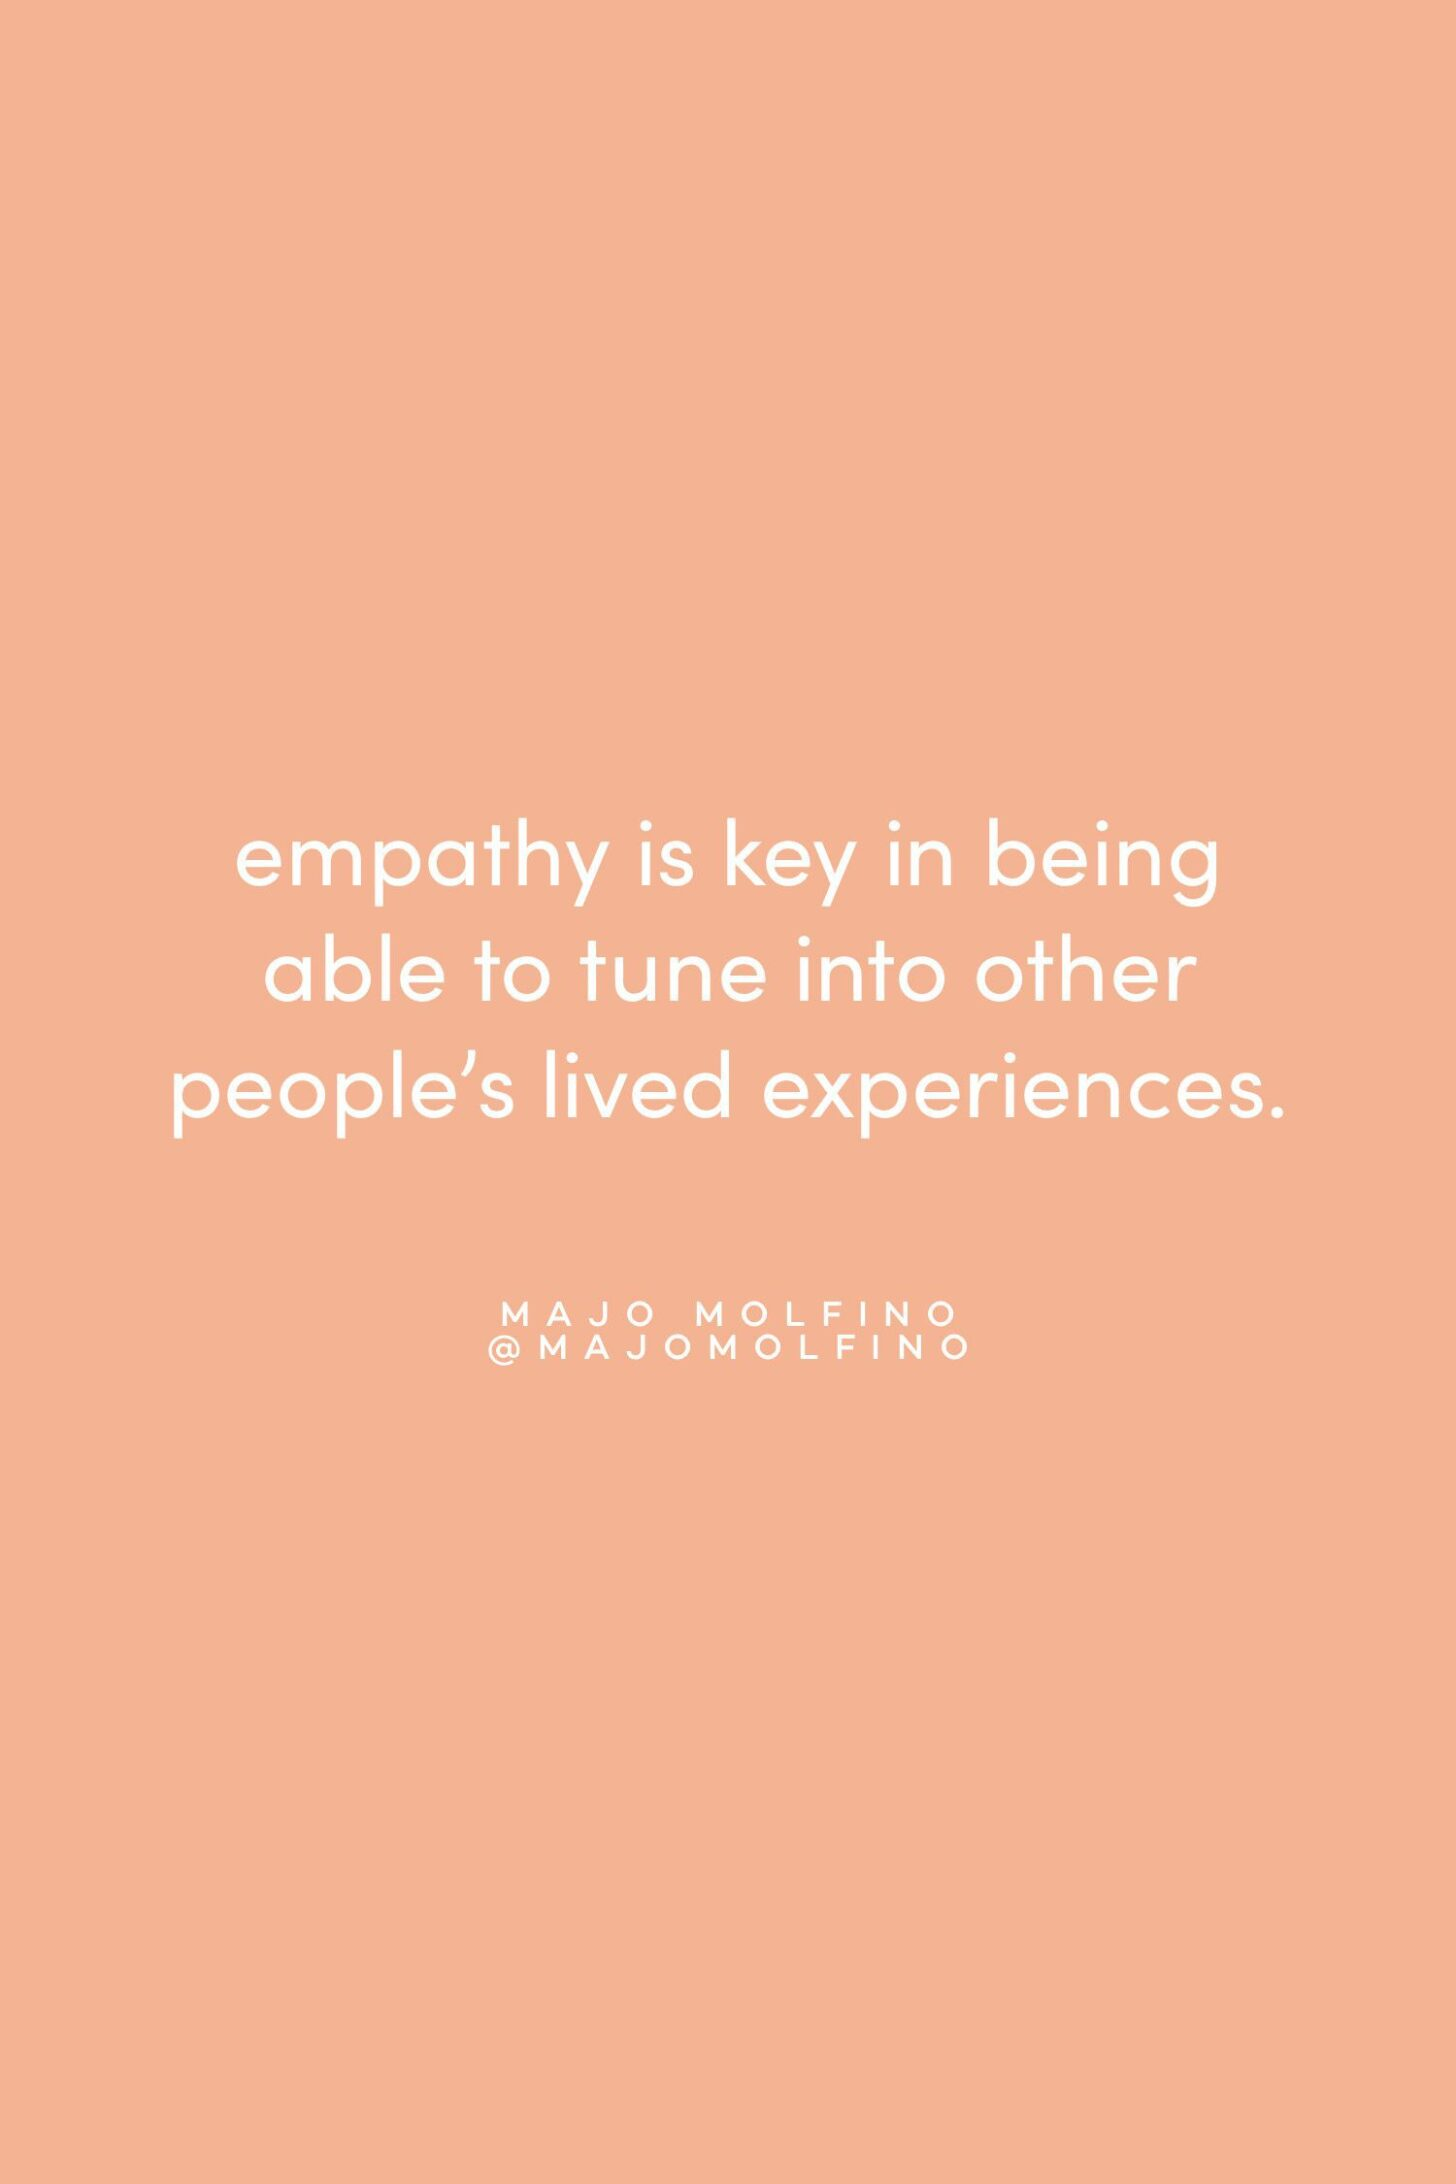 Quote on empathy by Majo Molfino on the Feel Good Effect Podcast #realfoodwholelife #feelgoodeffectpodcast #motivationalquote #positivityquote #inspirationalquote #growthquote #empathyquote